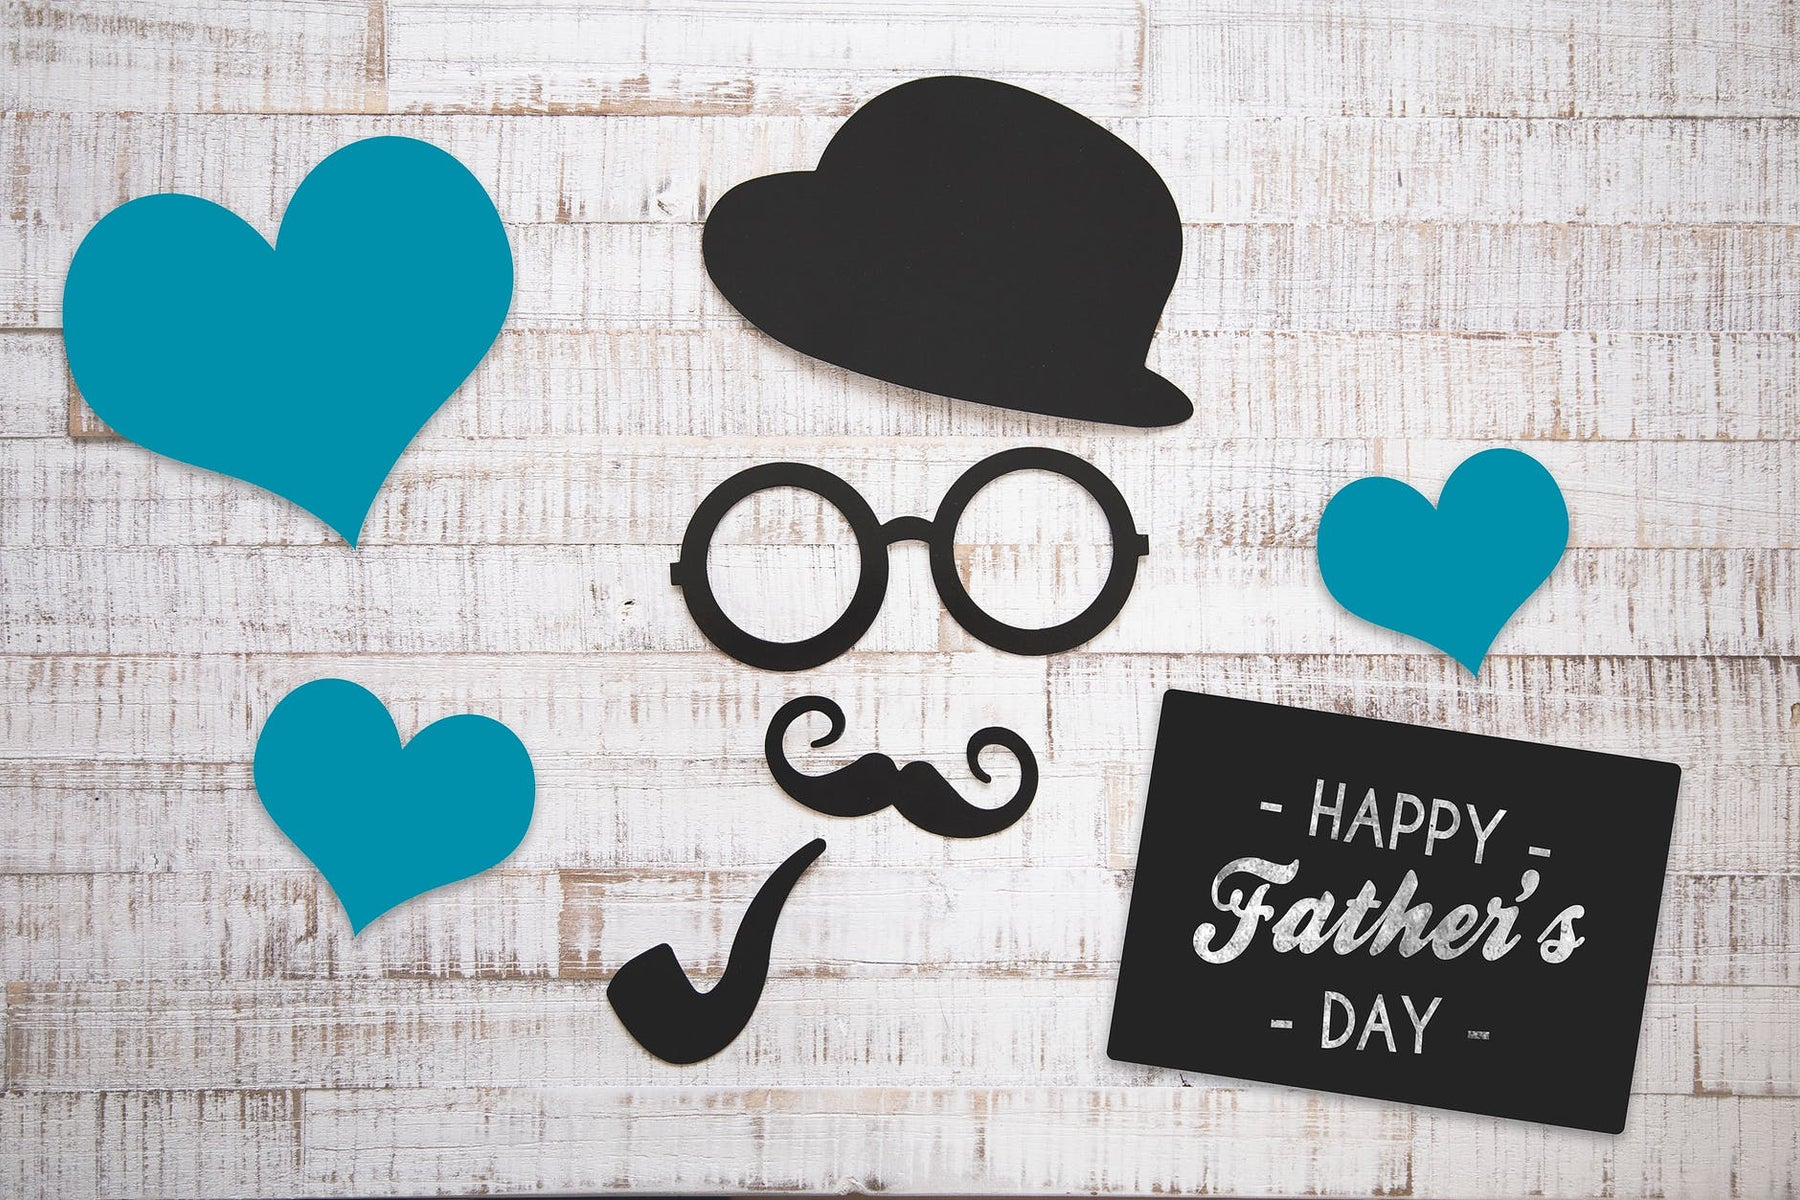 Enlighten up your Memories and Celebrate Father's Day with Hykolity LED's